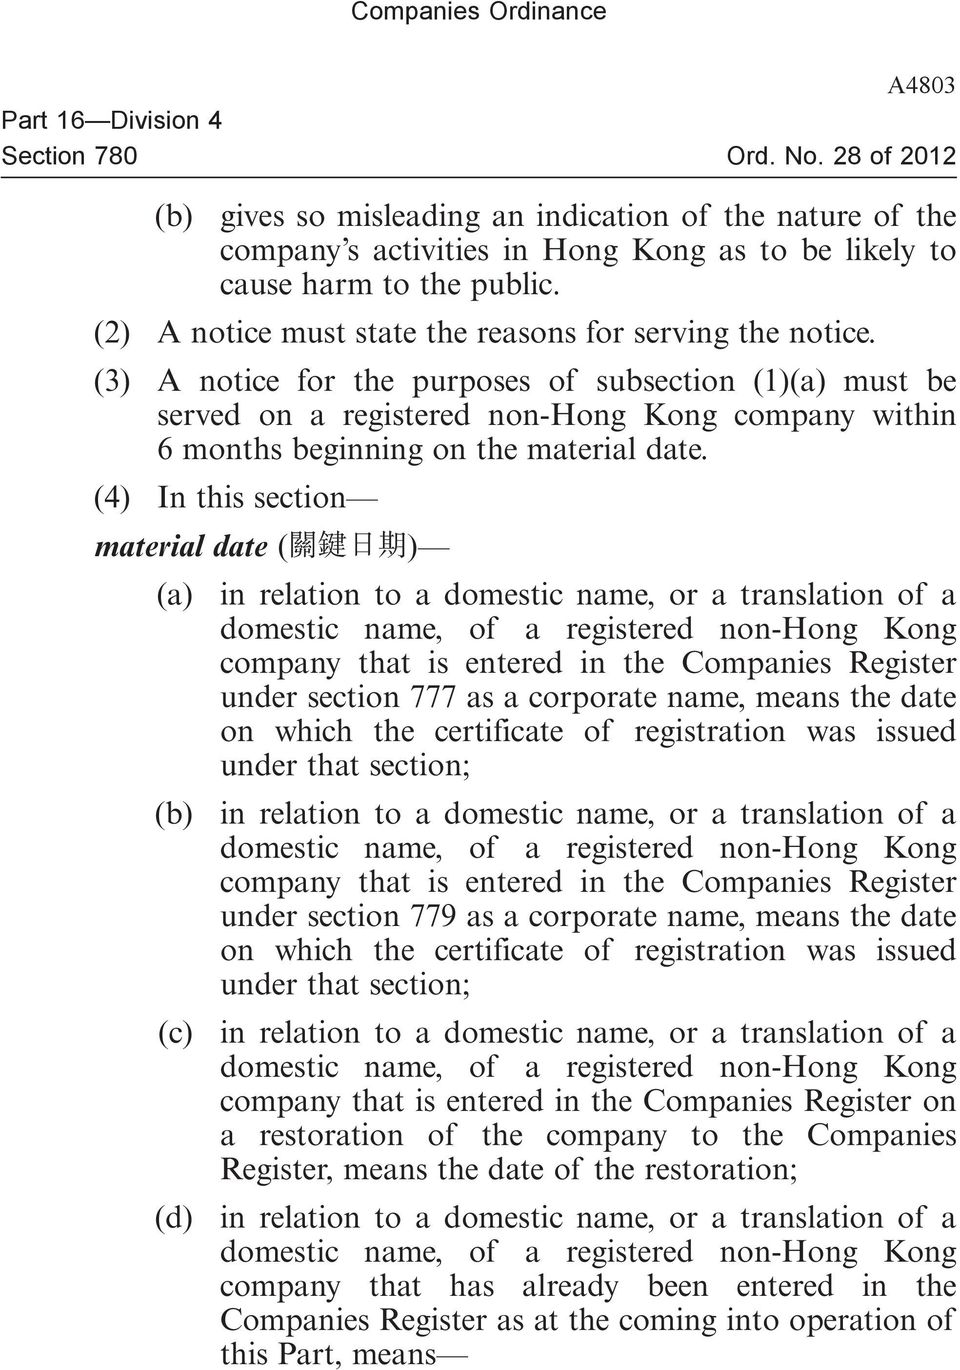 (3) A notice for the purposes of subsection (1)(a) must be served on a registered non-hong Kong company within 6 months beginning on the material date.